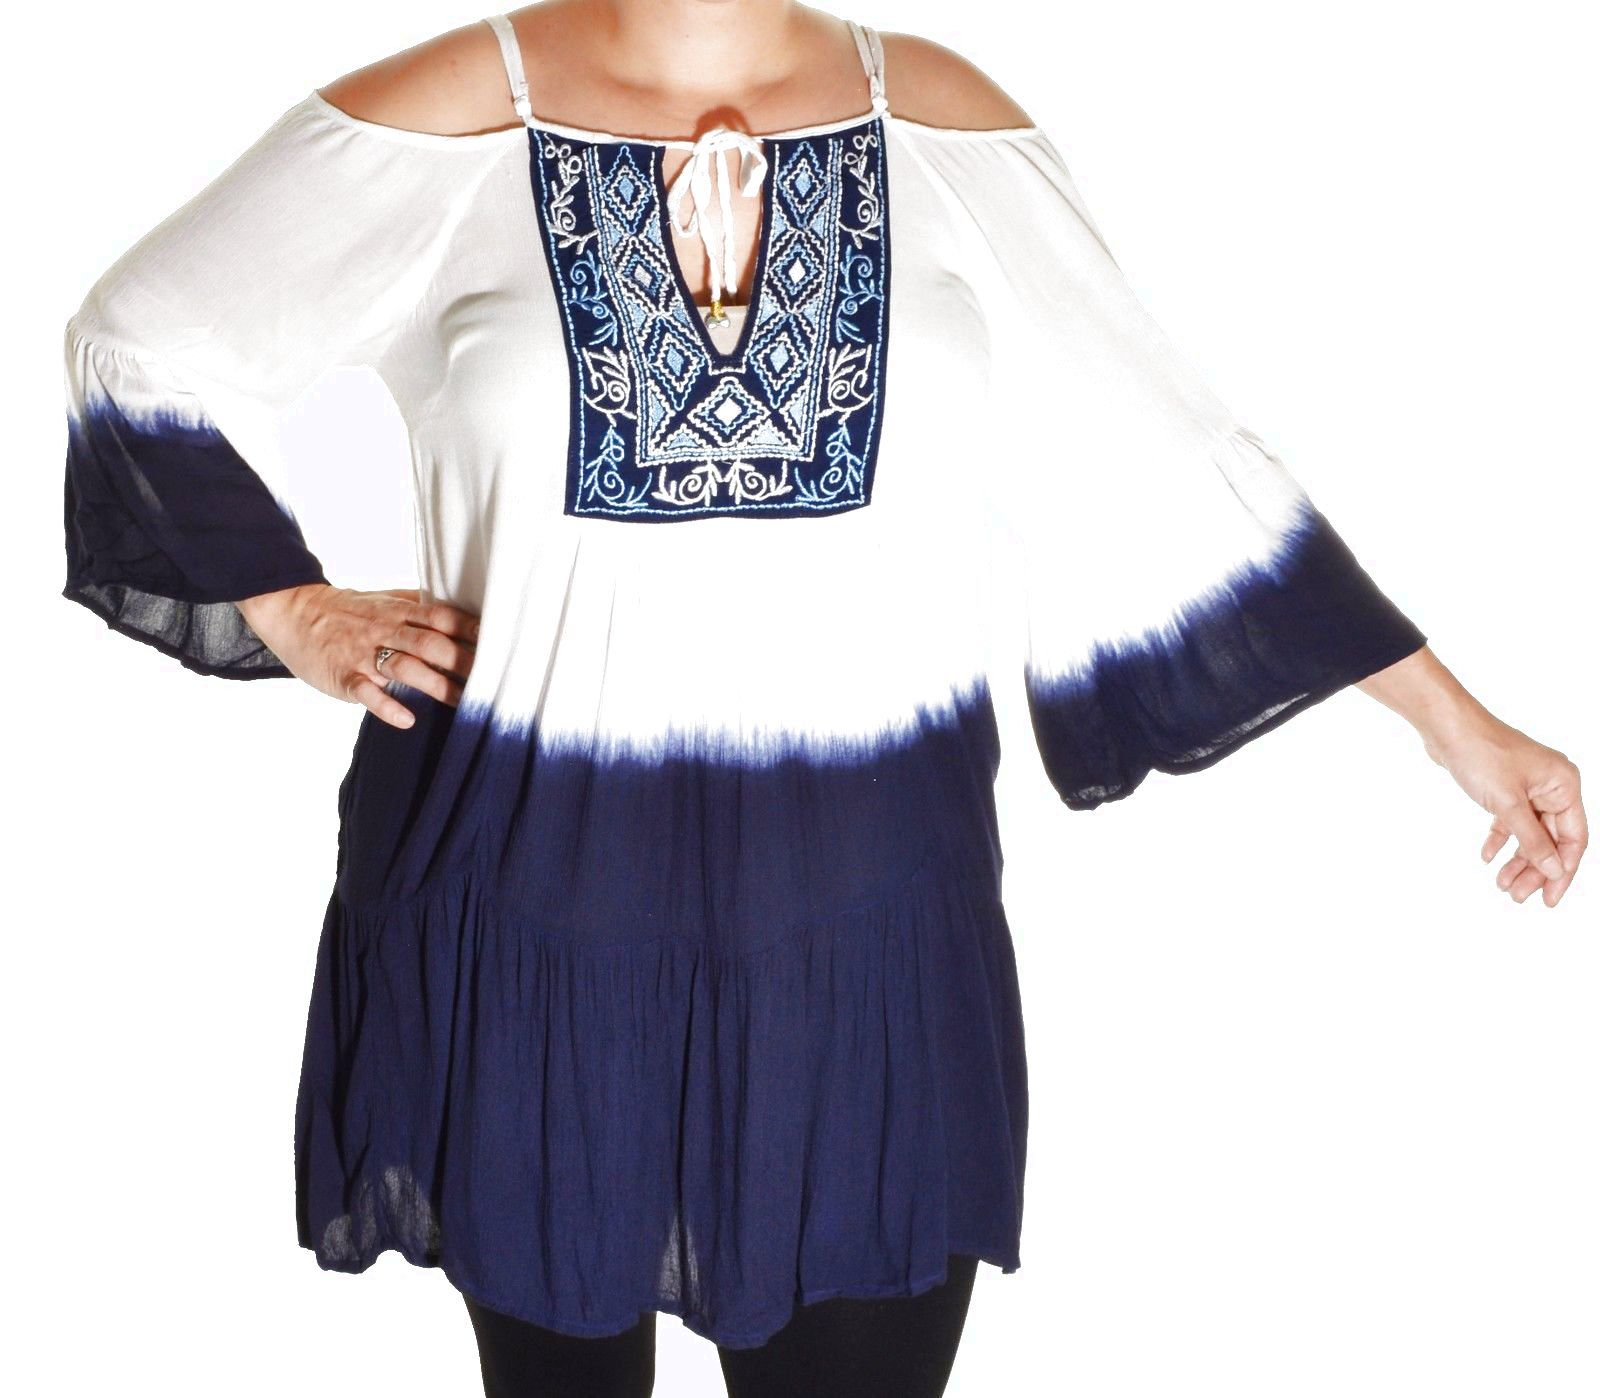 41bde017f56e5 Highness Ombre Cold Shoulder Tunic Embroidered Top Long Bell Sleeve Shirt  Plus  21.5